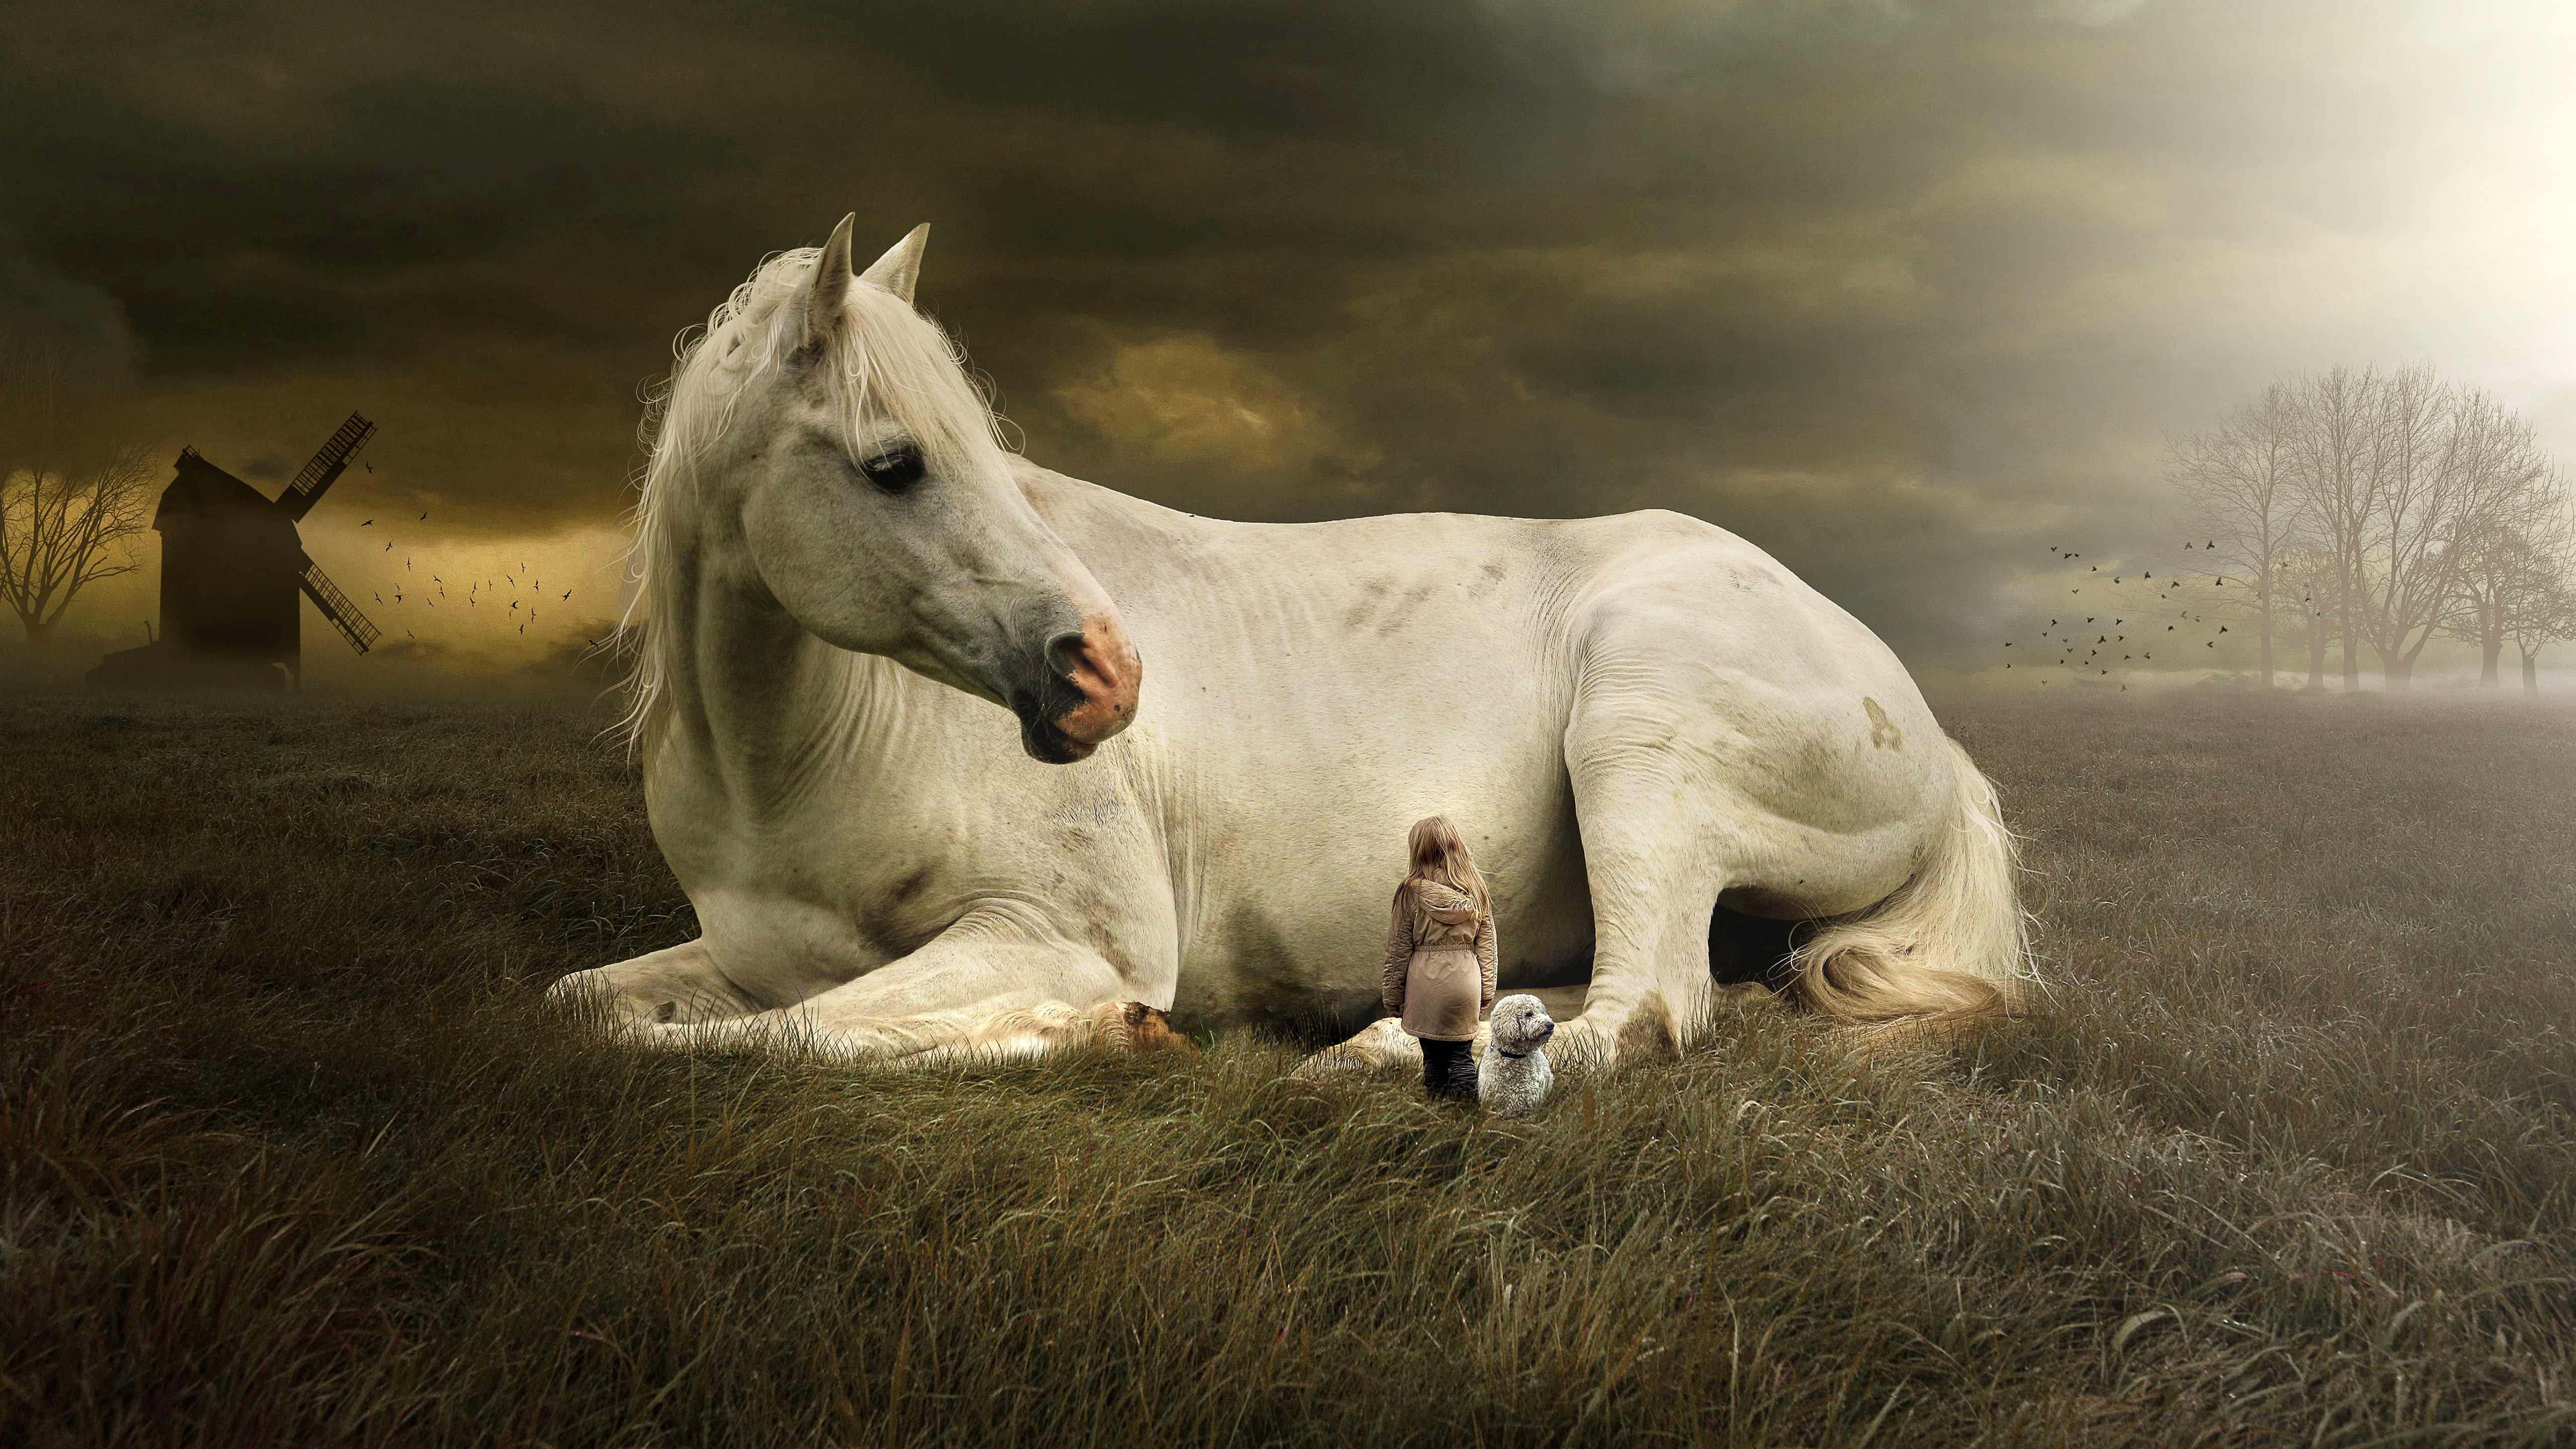 Horse Fantasy 5k Wallpapers White Horse Laying Down 5120x2880 Wallpaper Teahub Io